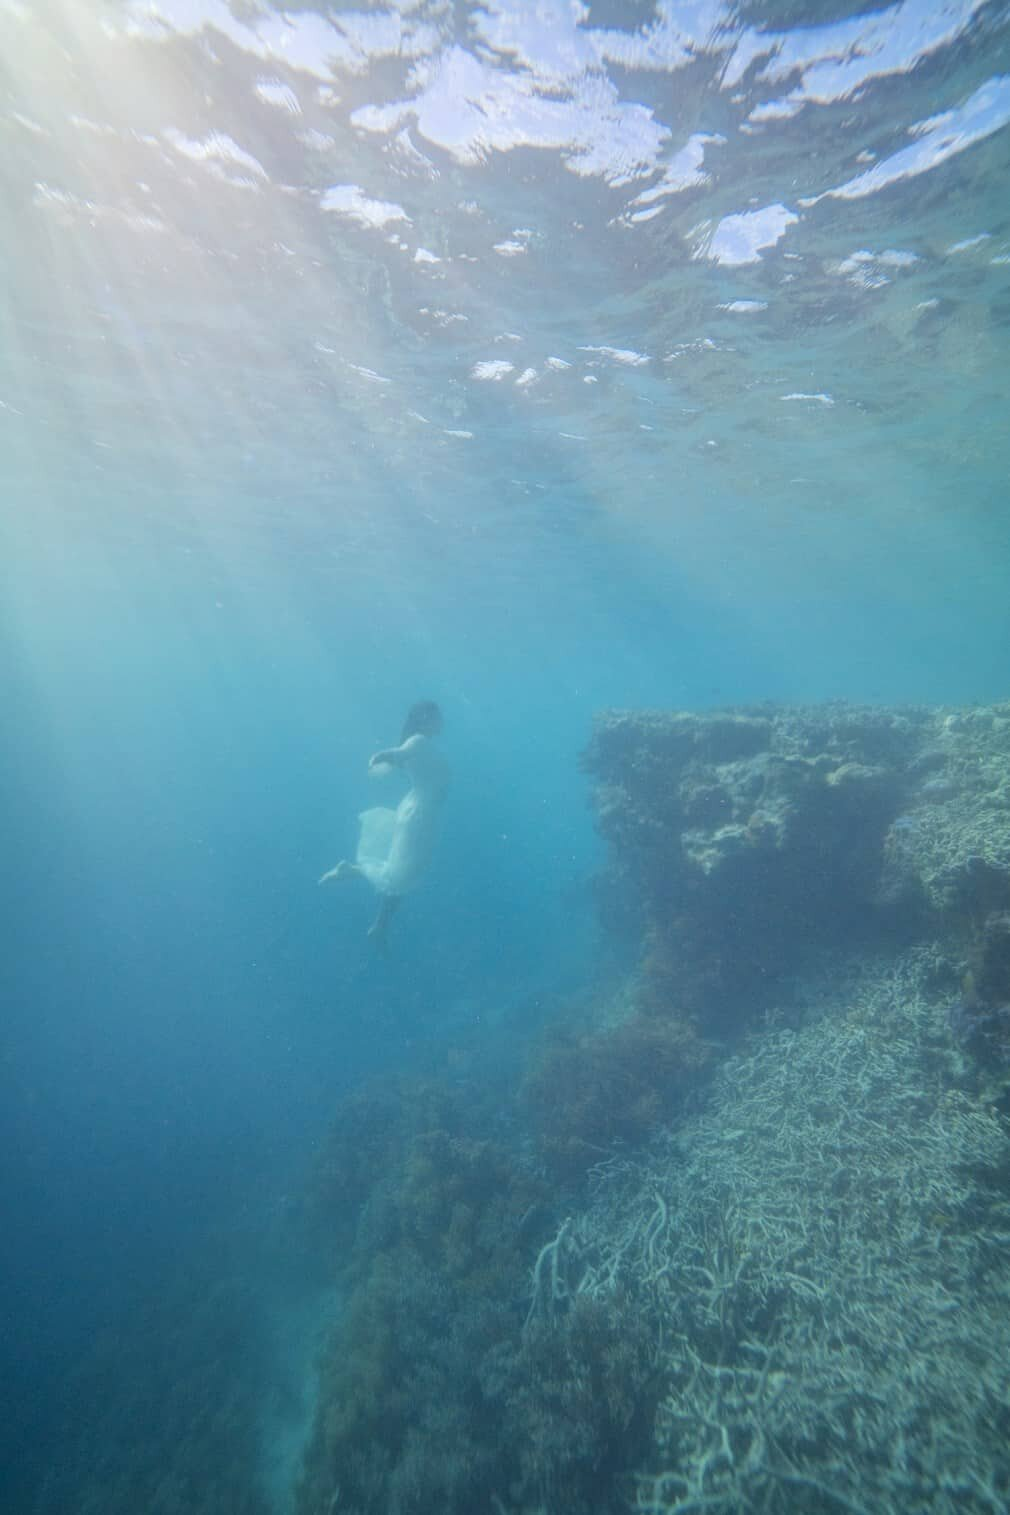 Underwater Photography Great Barrier Reef, model in white dress dancing underwater, photography by Lisa Michele Burns